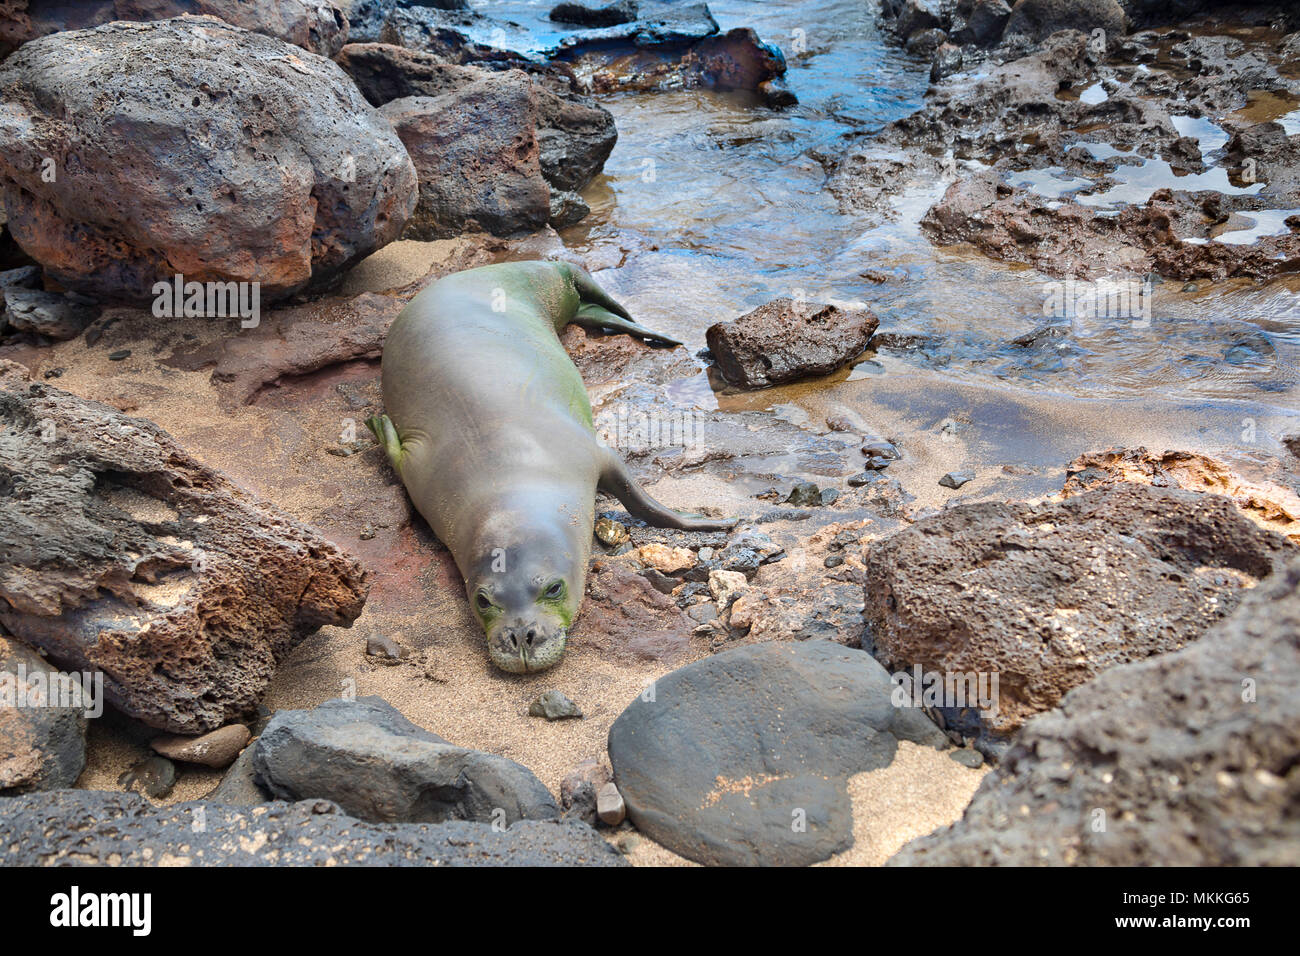 This young Hawaiian monk seal, Monachus schauinslandi, (endemic and endangered) was photographed on the west end of Molokai, Hawaii. Monk seals sleep  - Stock Image